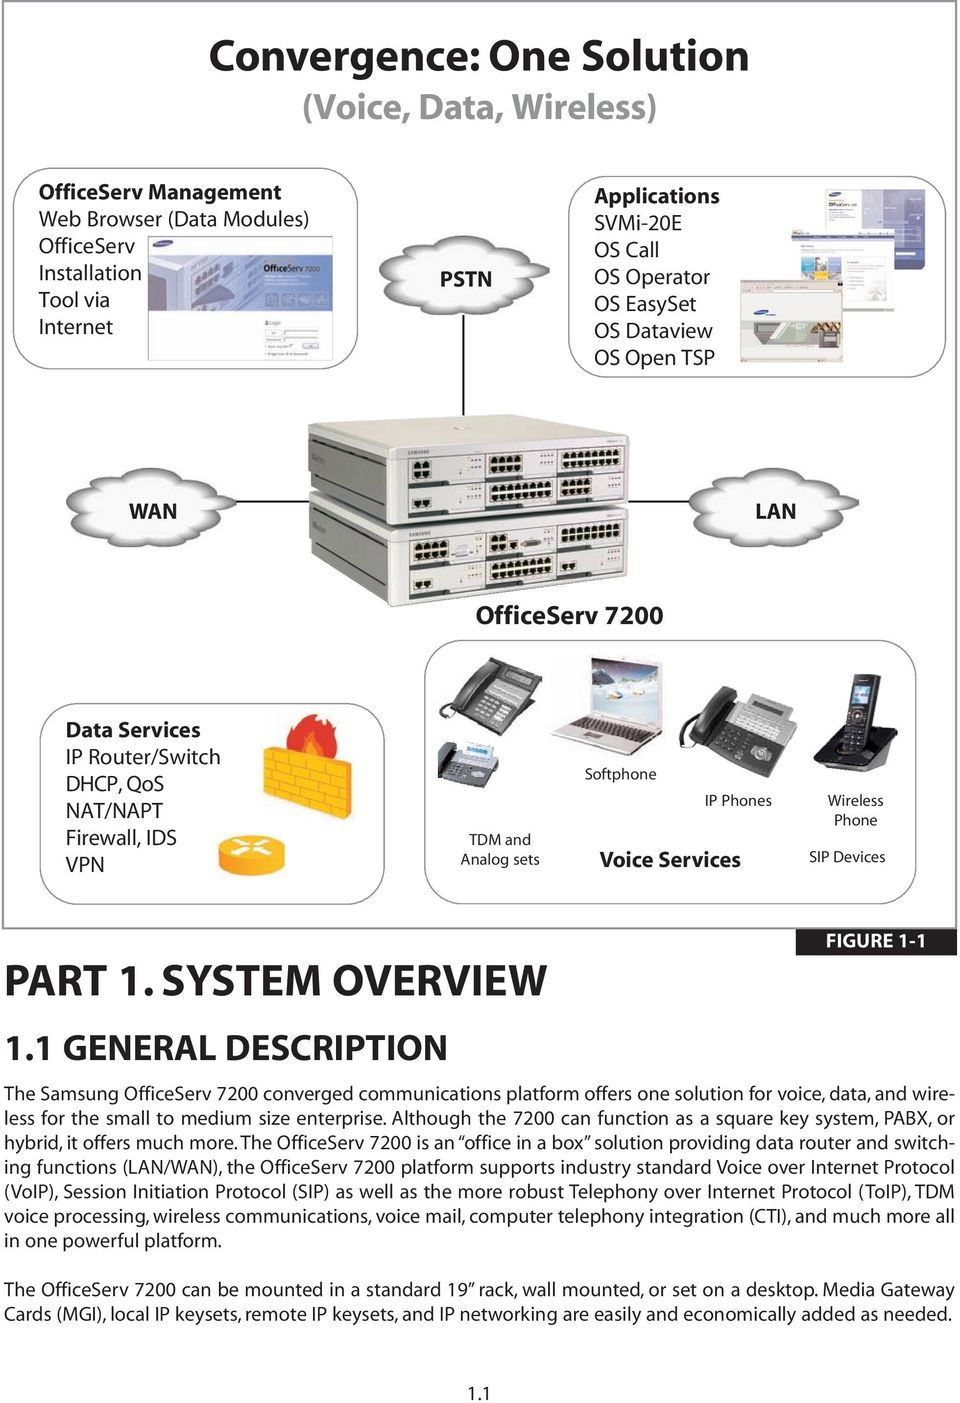 PART 1. SYSTEM OVERVIEW 1.